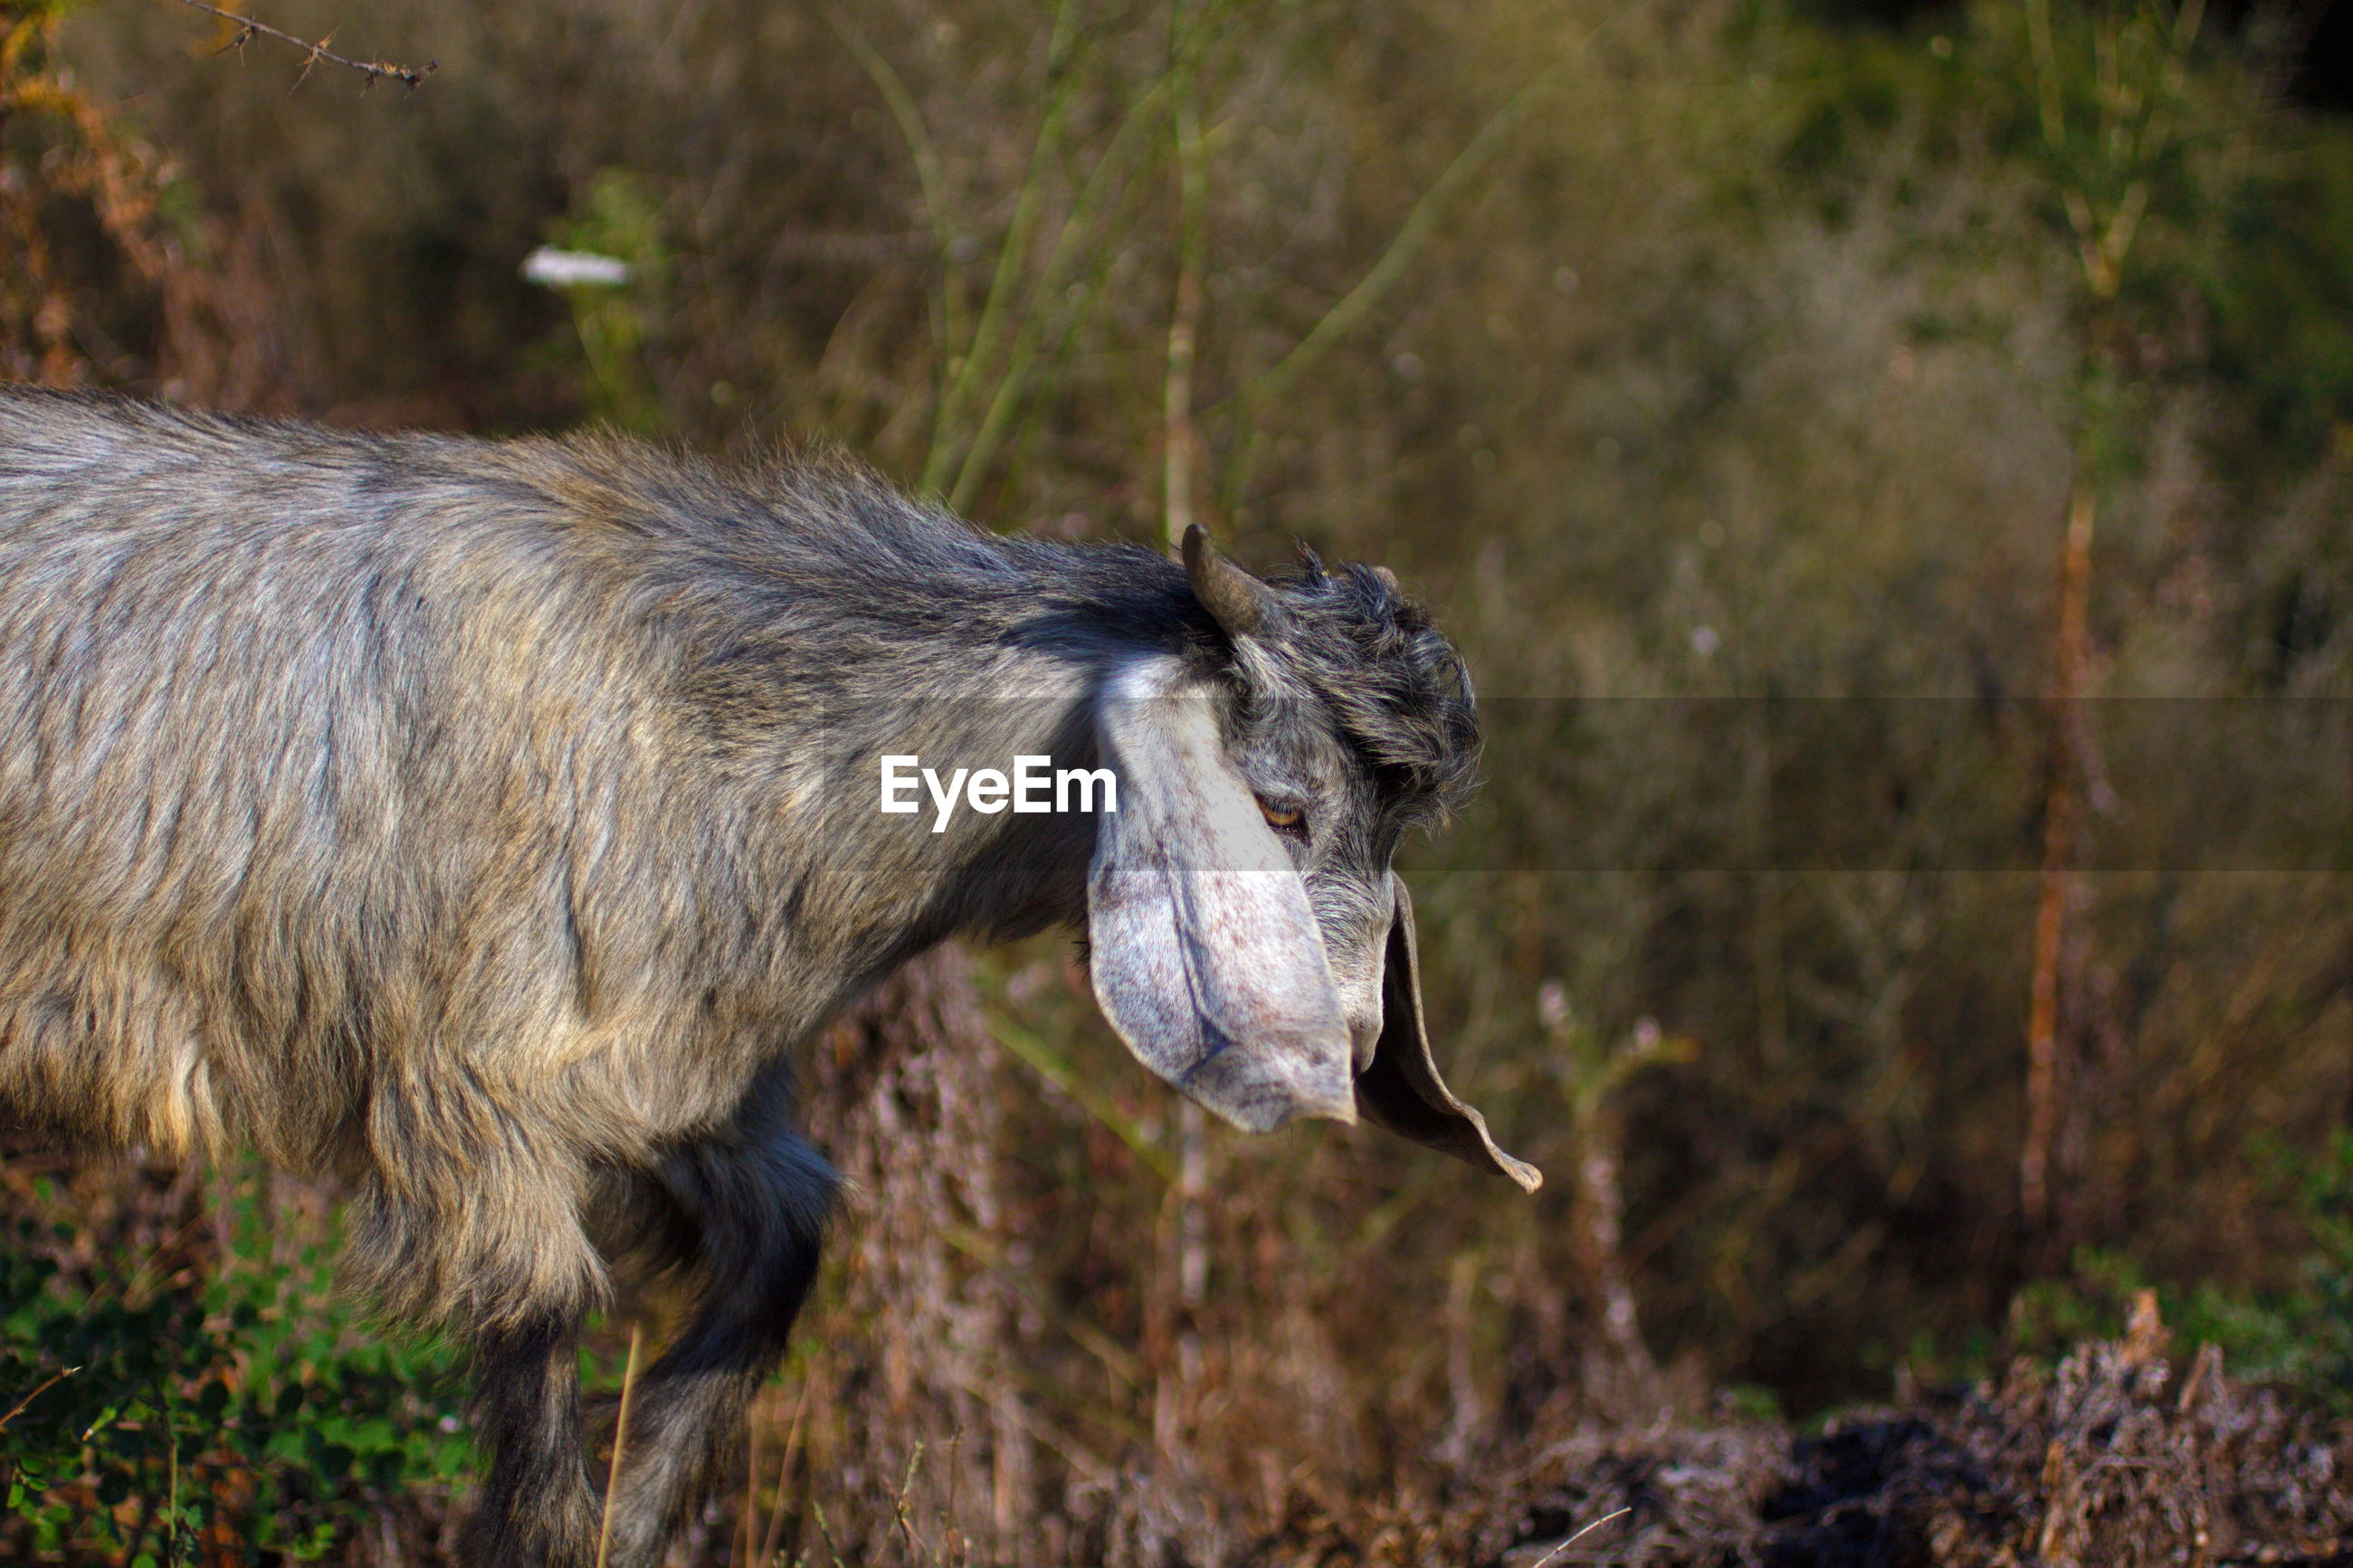 SIDE VIEW OF AN ANIMAL